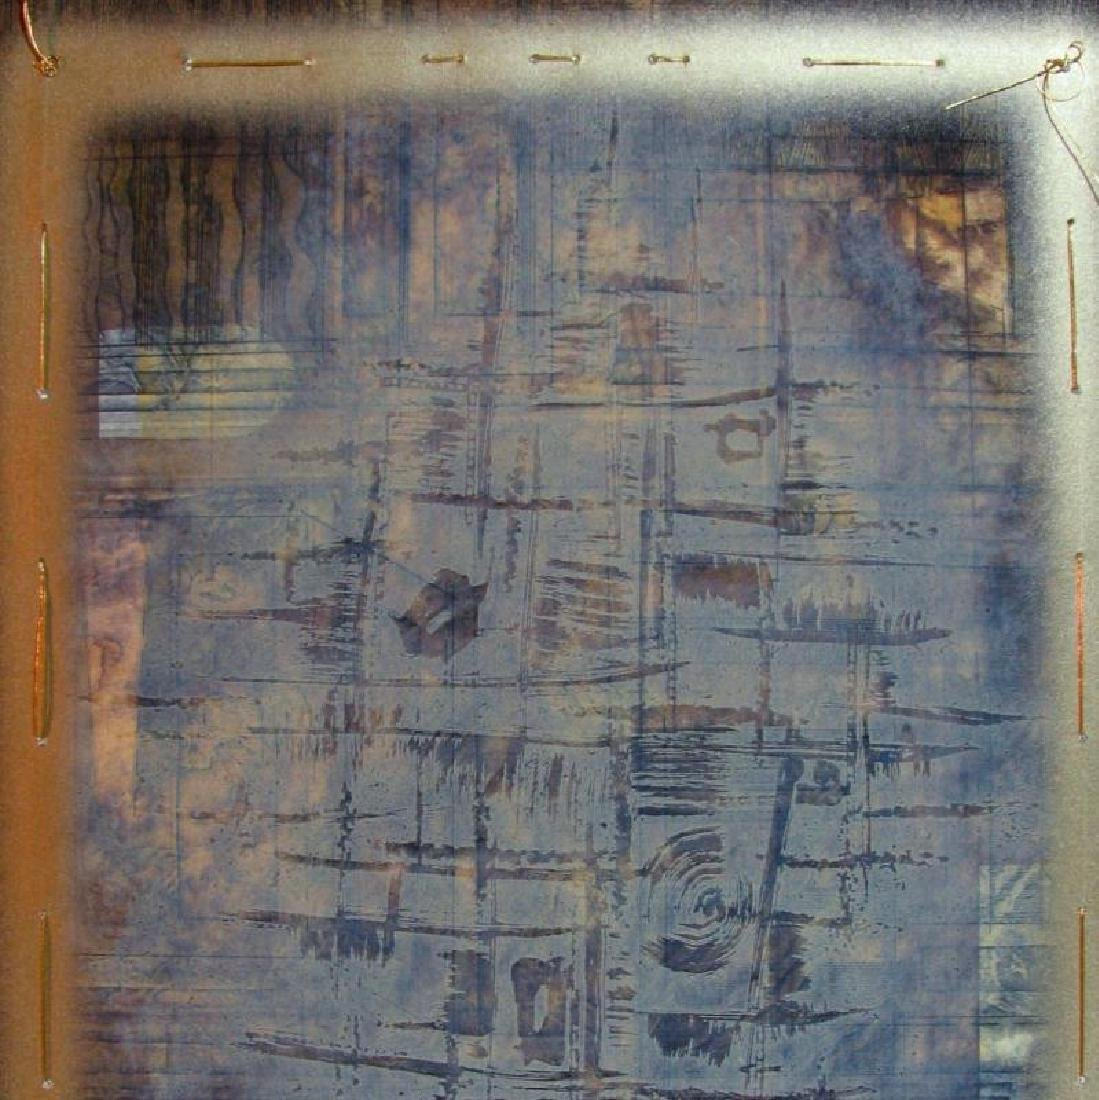 Lithograph Textured Limited Edition Signed Art - 2